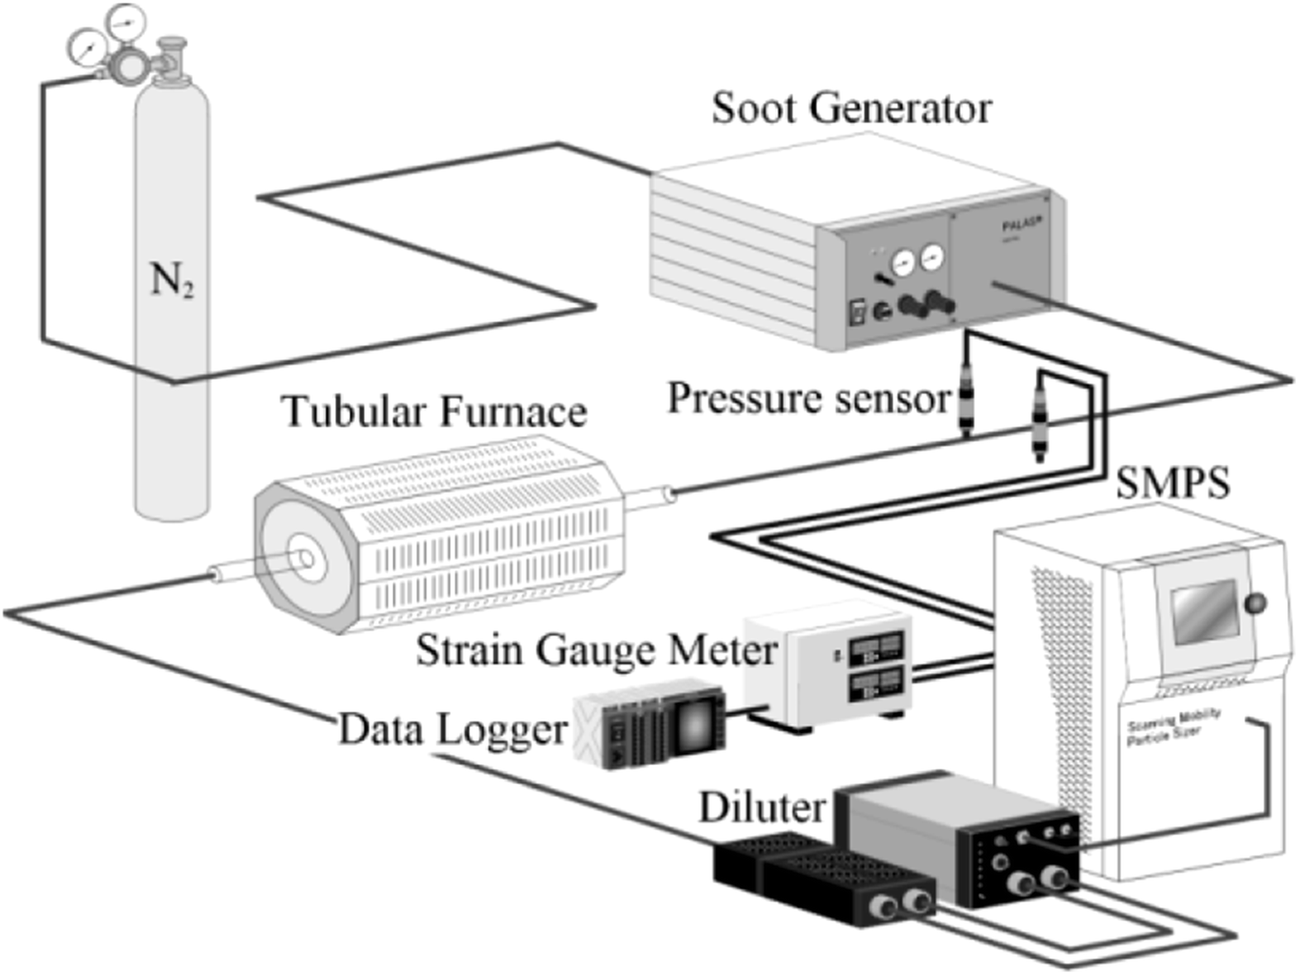 Pressure Response during Filtration and Oxidation in Diesel